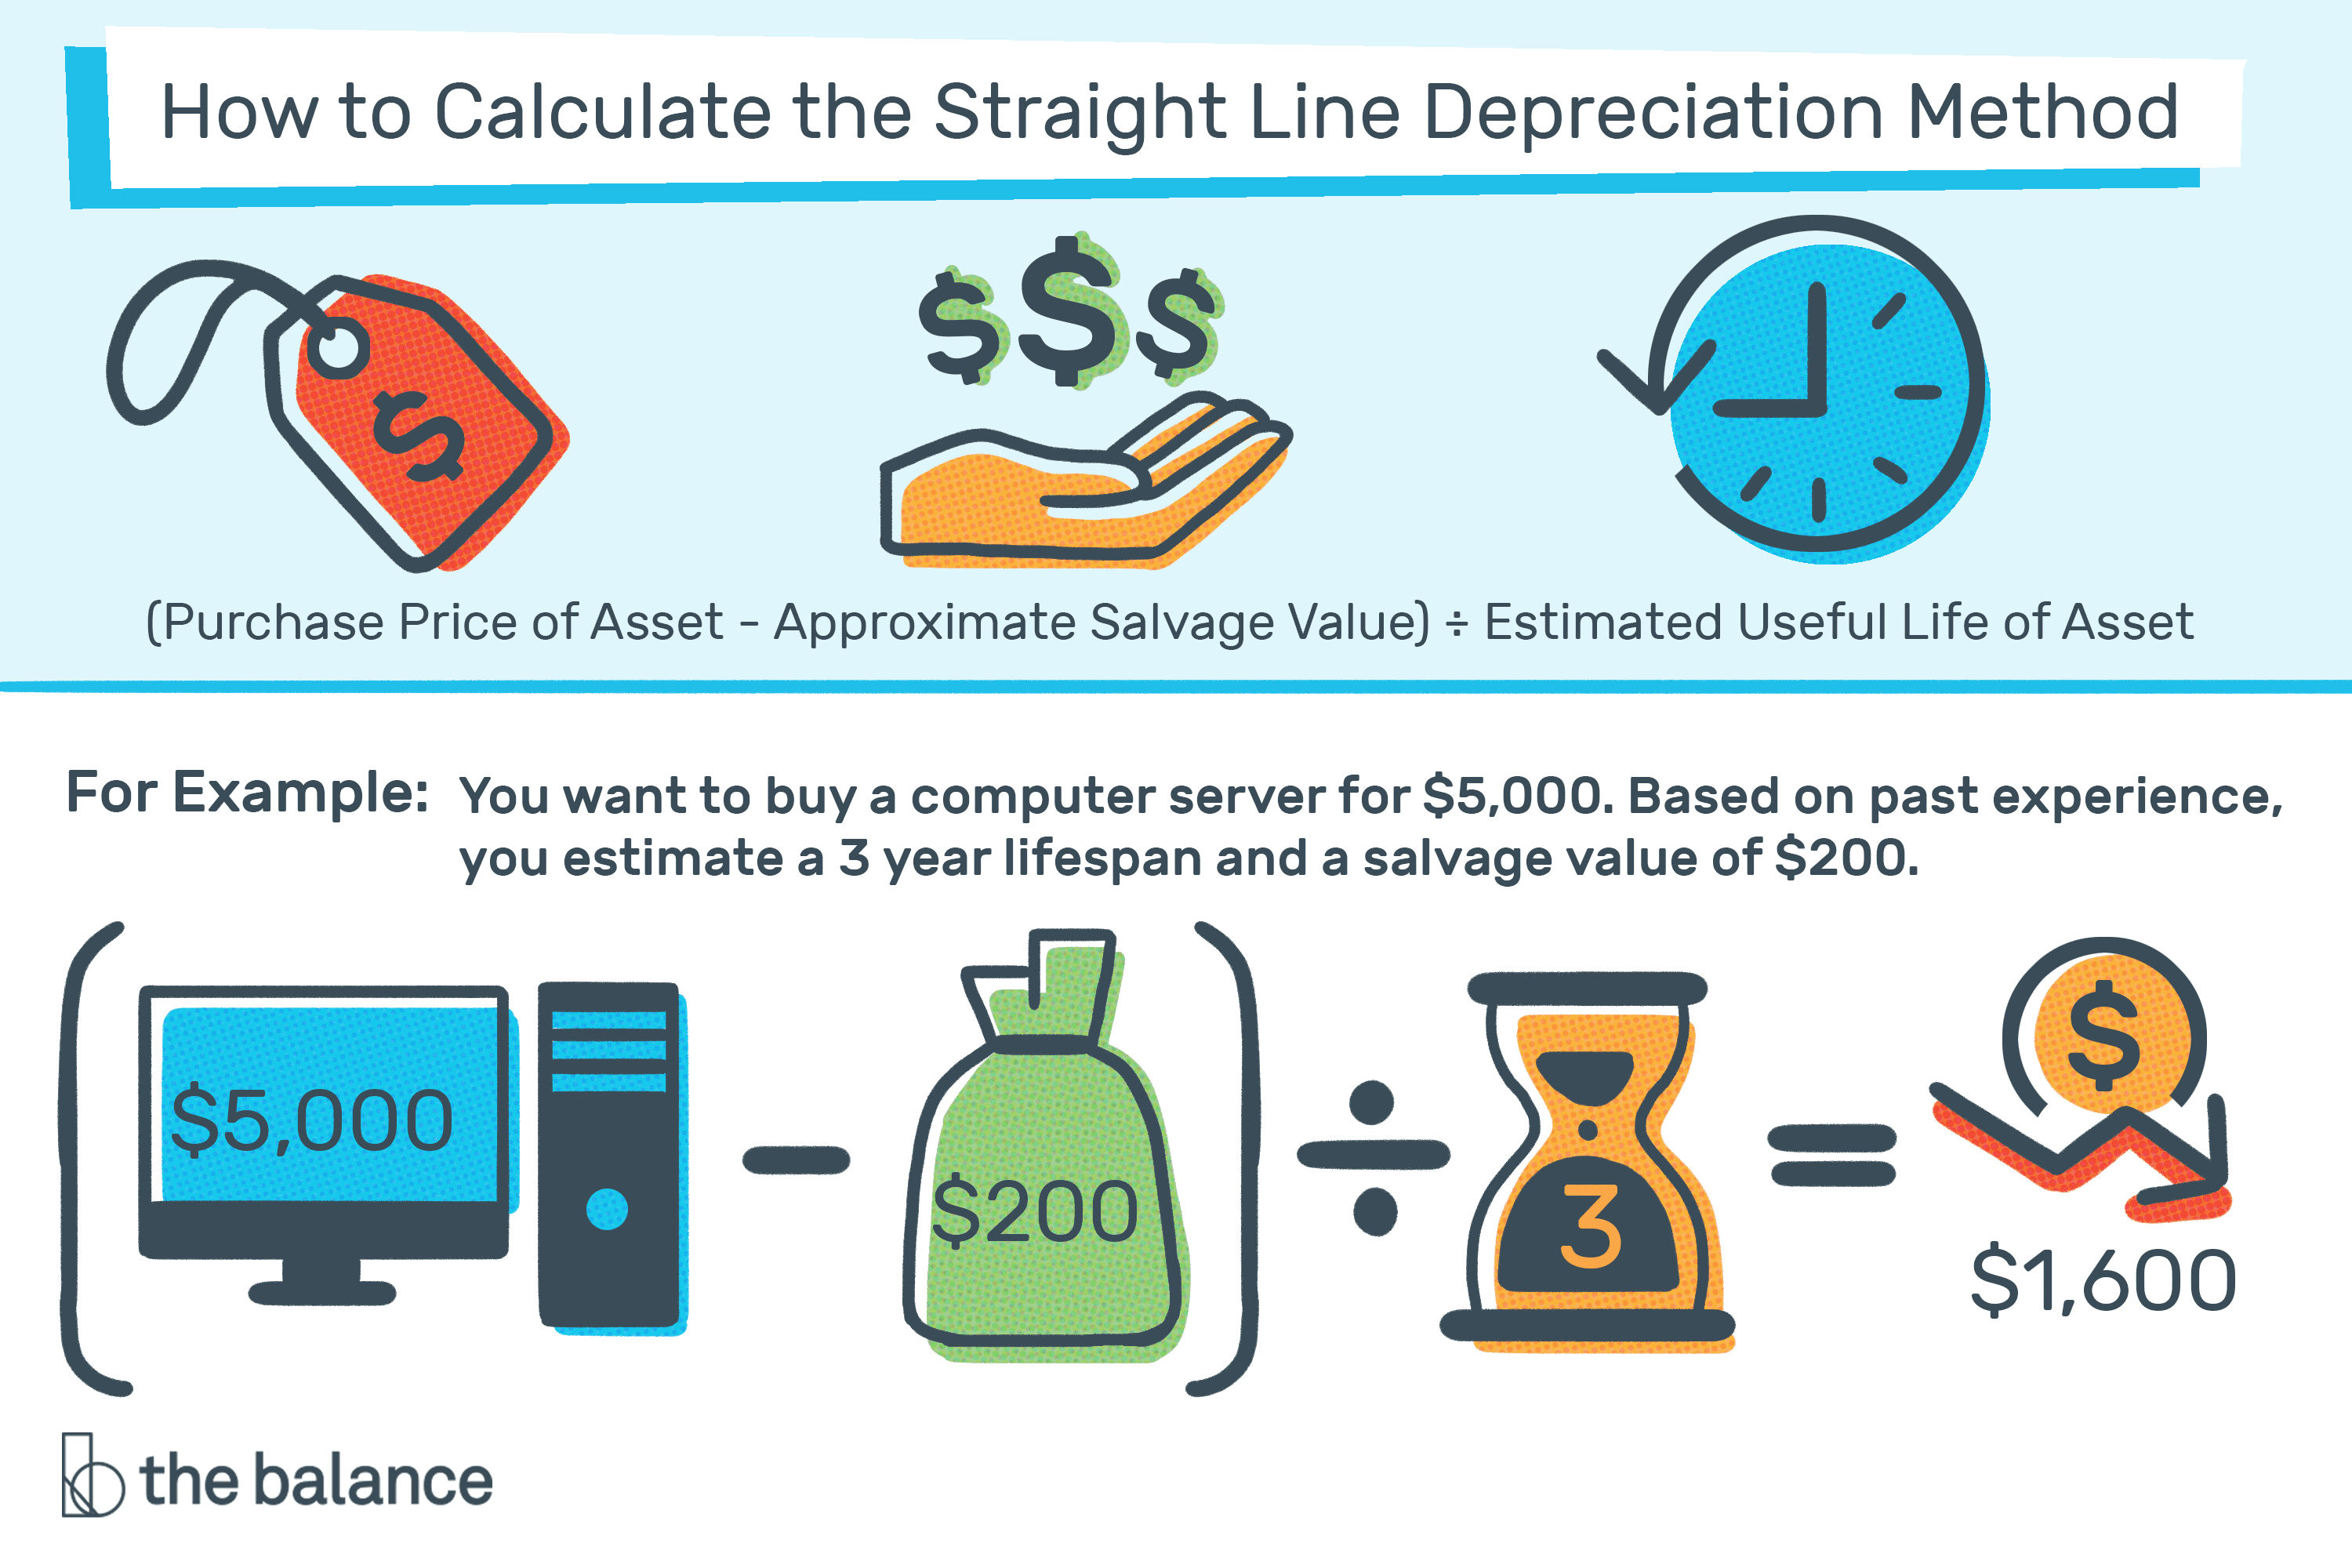 the straight line depreciation method